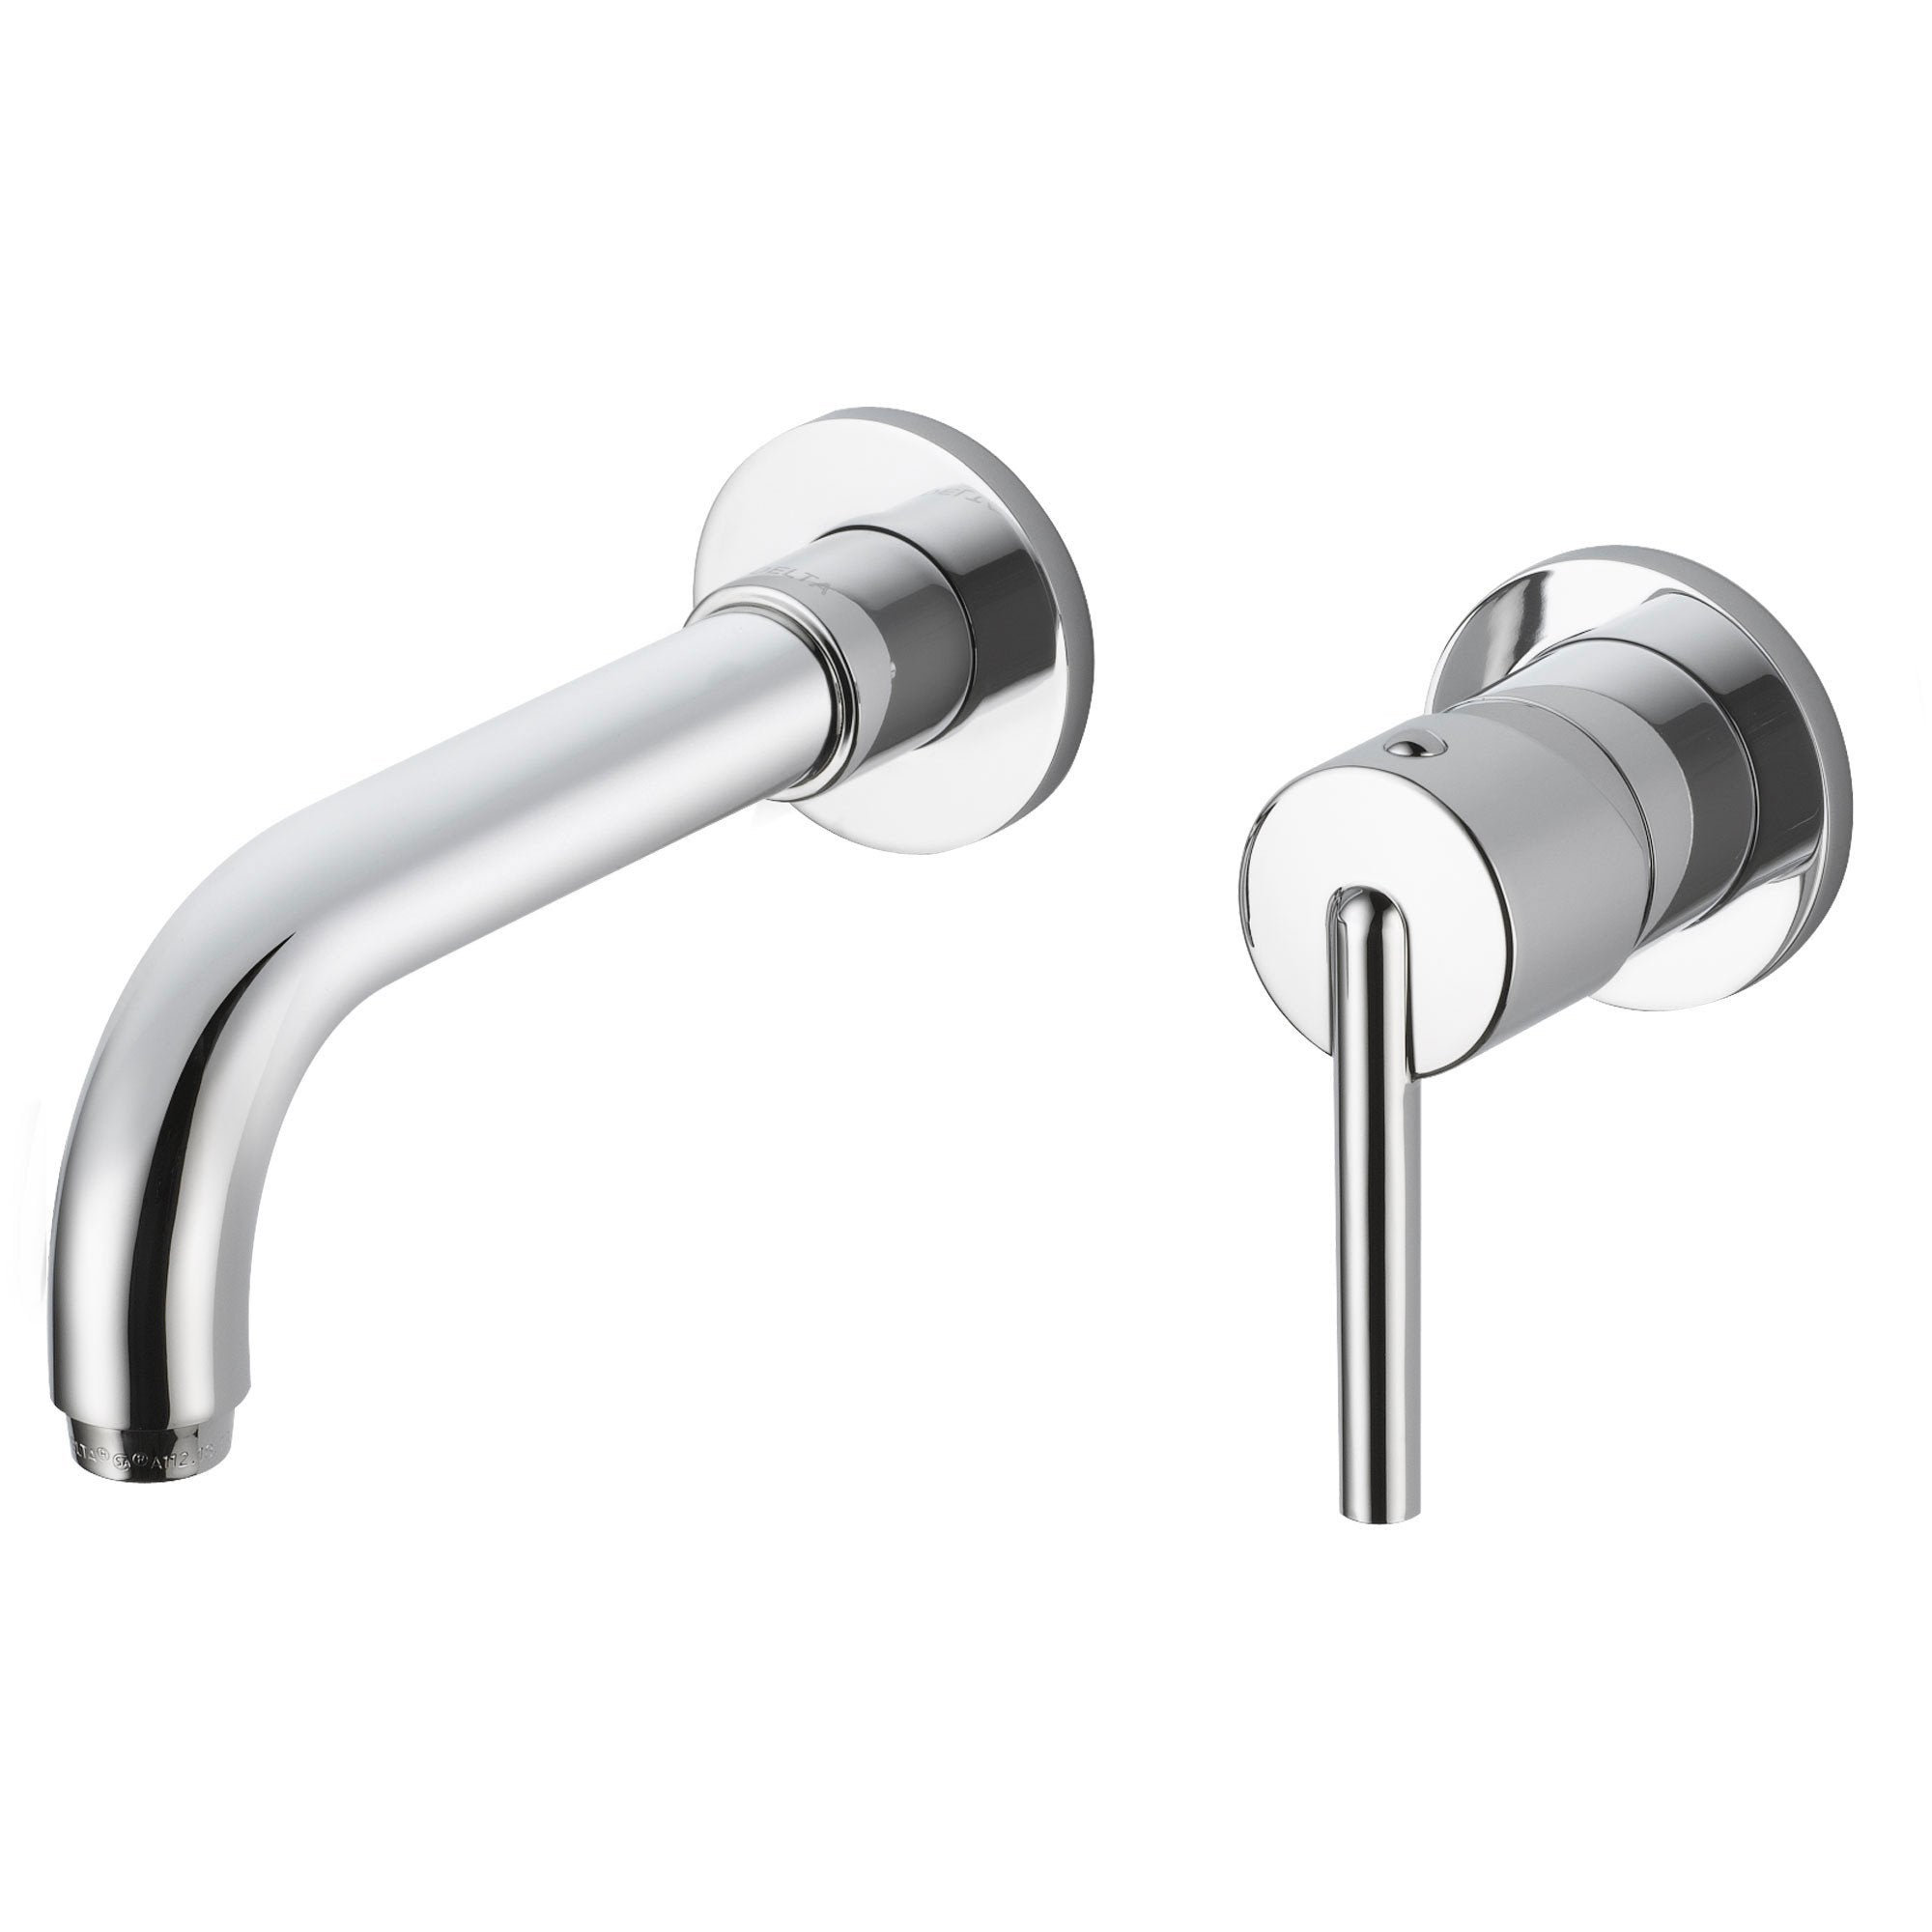 Delta Trinsic Wall Mount Single Handle Chrome Finish Bathroom Faucet 590140